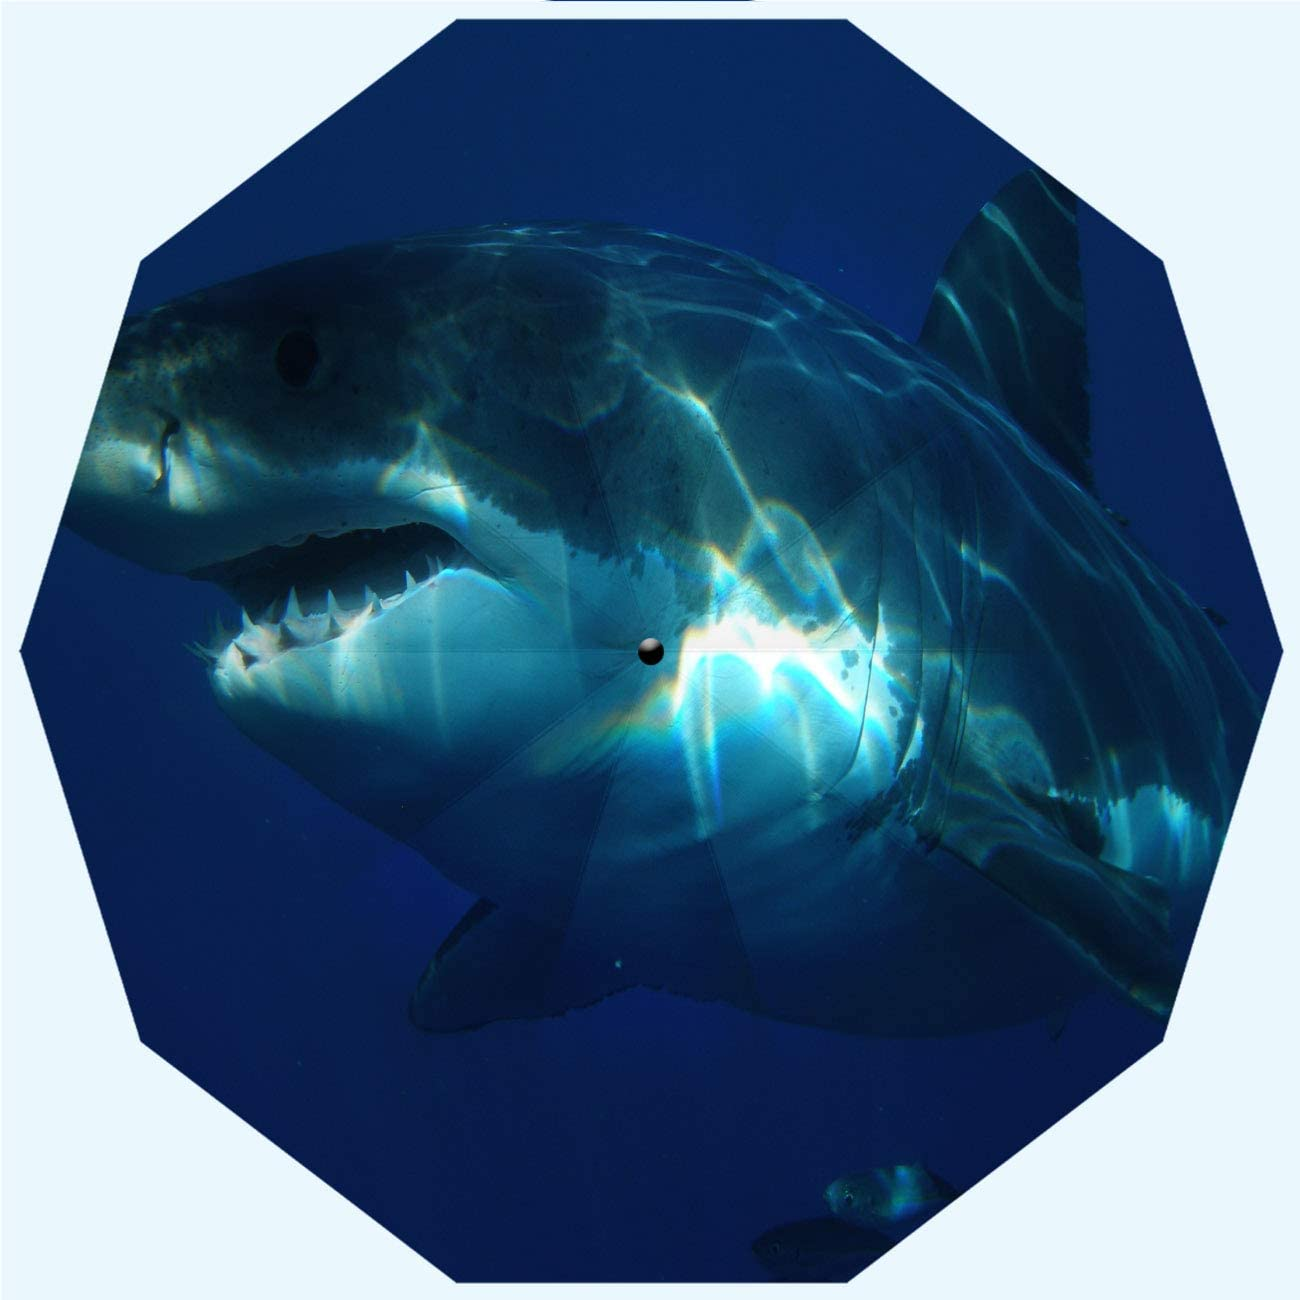 Shark Fashion Travel Umbrella, UV Protection Automatic Opening And Closing Great White Shark Dangerous Predator Guadalupe Mexico Underwater Windproof, Rainproof, Men, Ladies, 10 Ribs, 42 Inches